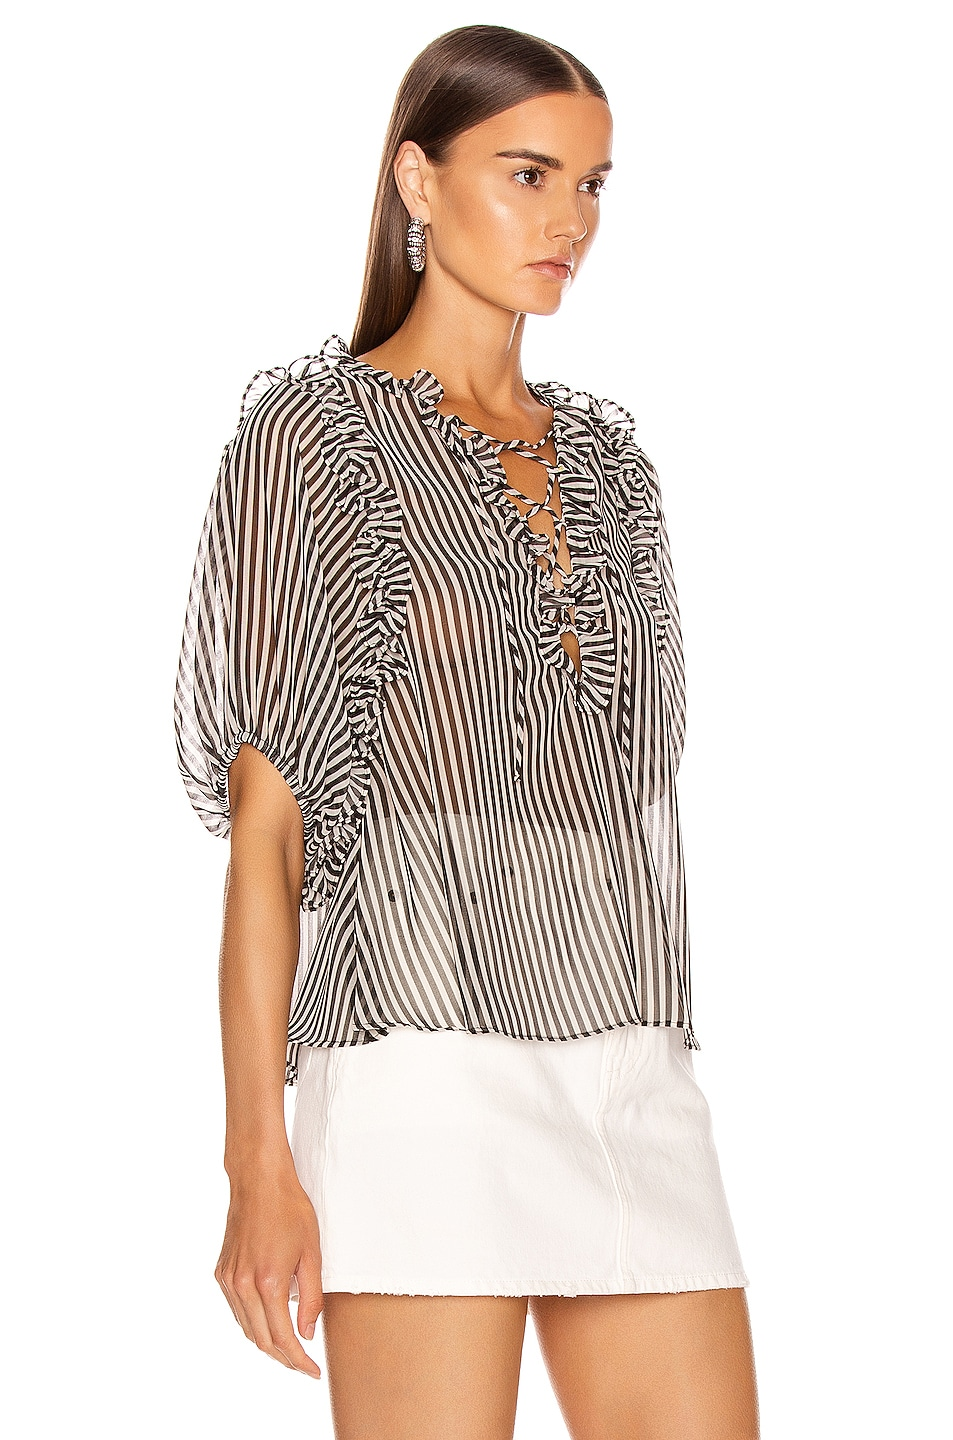 Image 2 of ICONS Objects of Devotion Ruffle Lace Up Blouse in Black & White Stripe